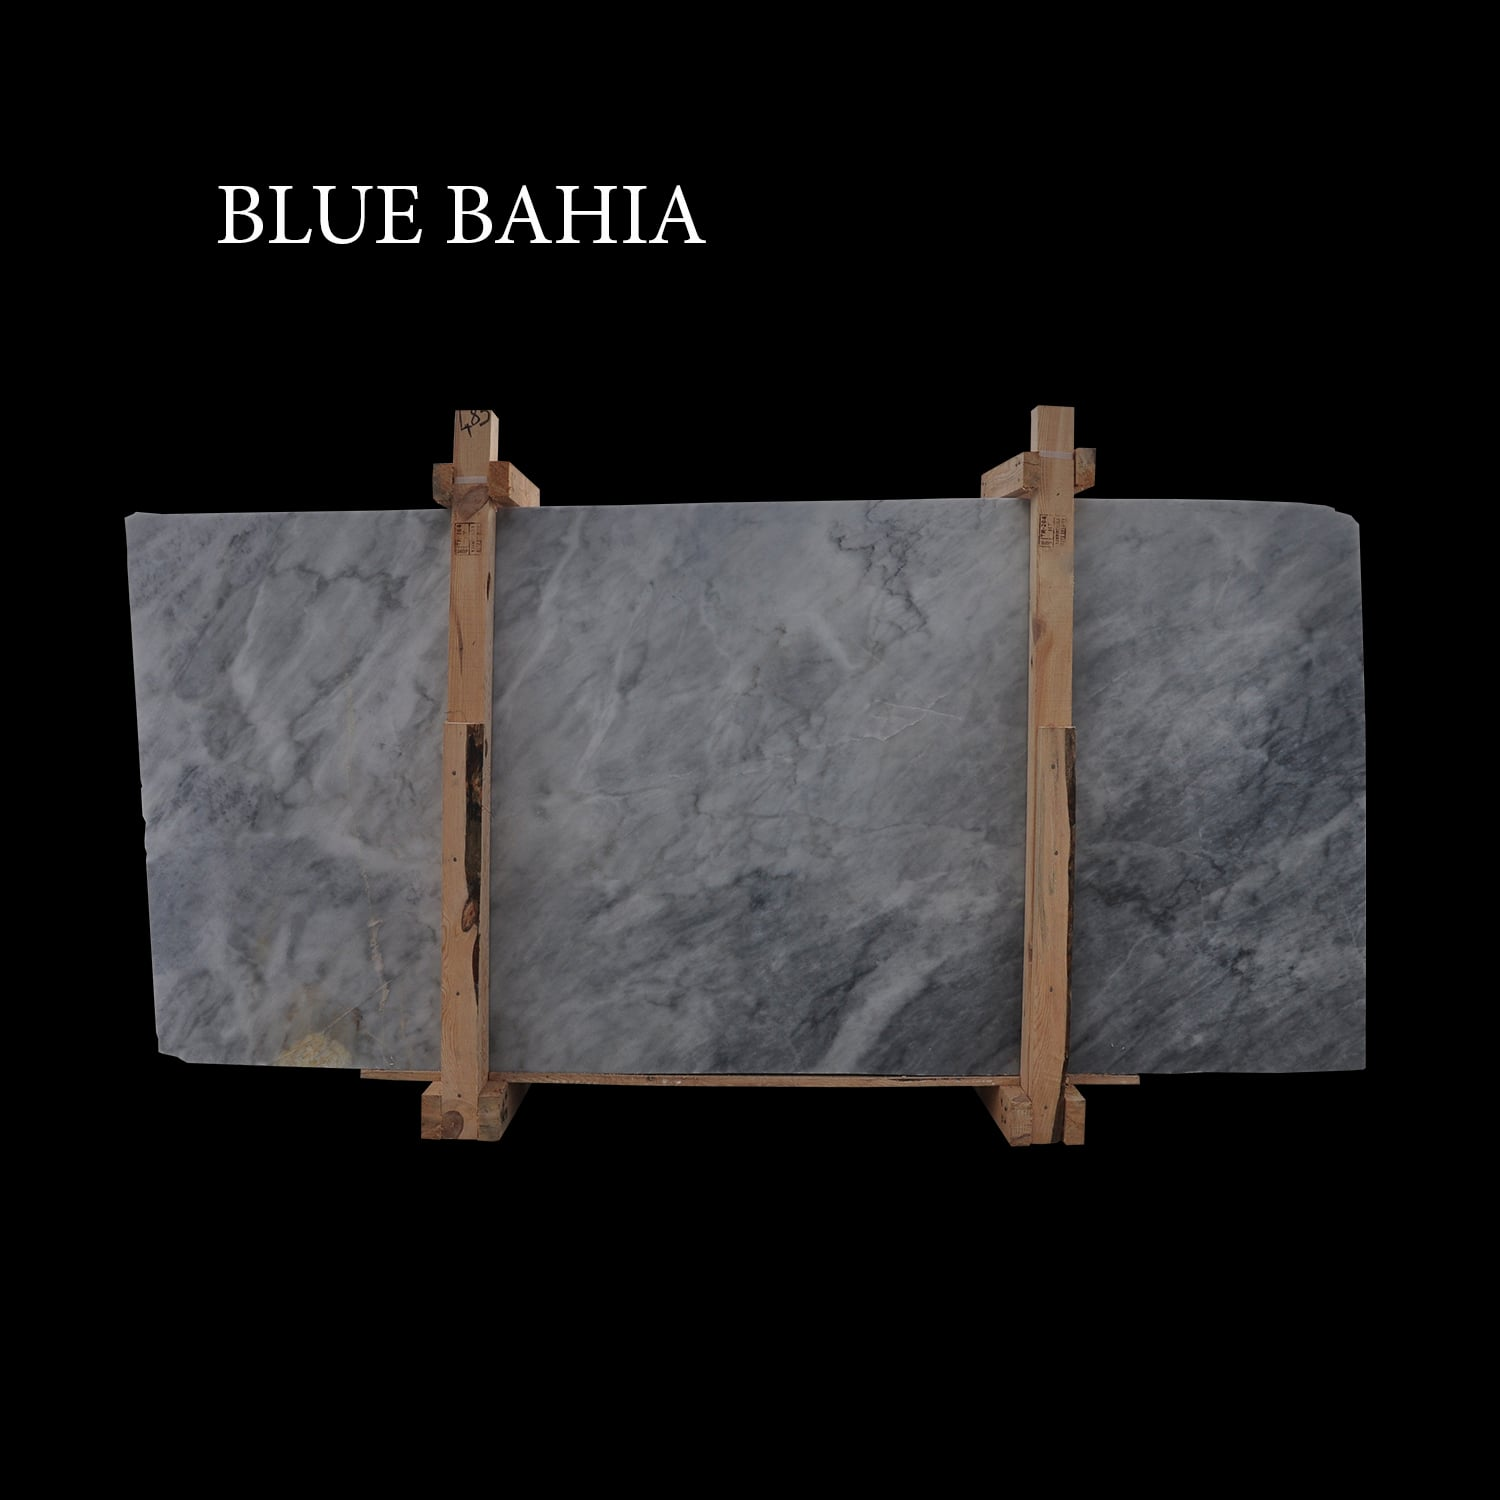 Afyon Grey Marble Blue Bahia Slabs